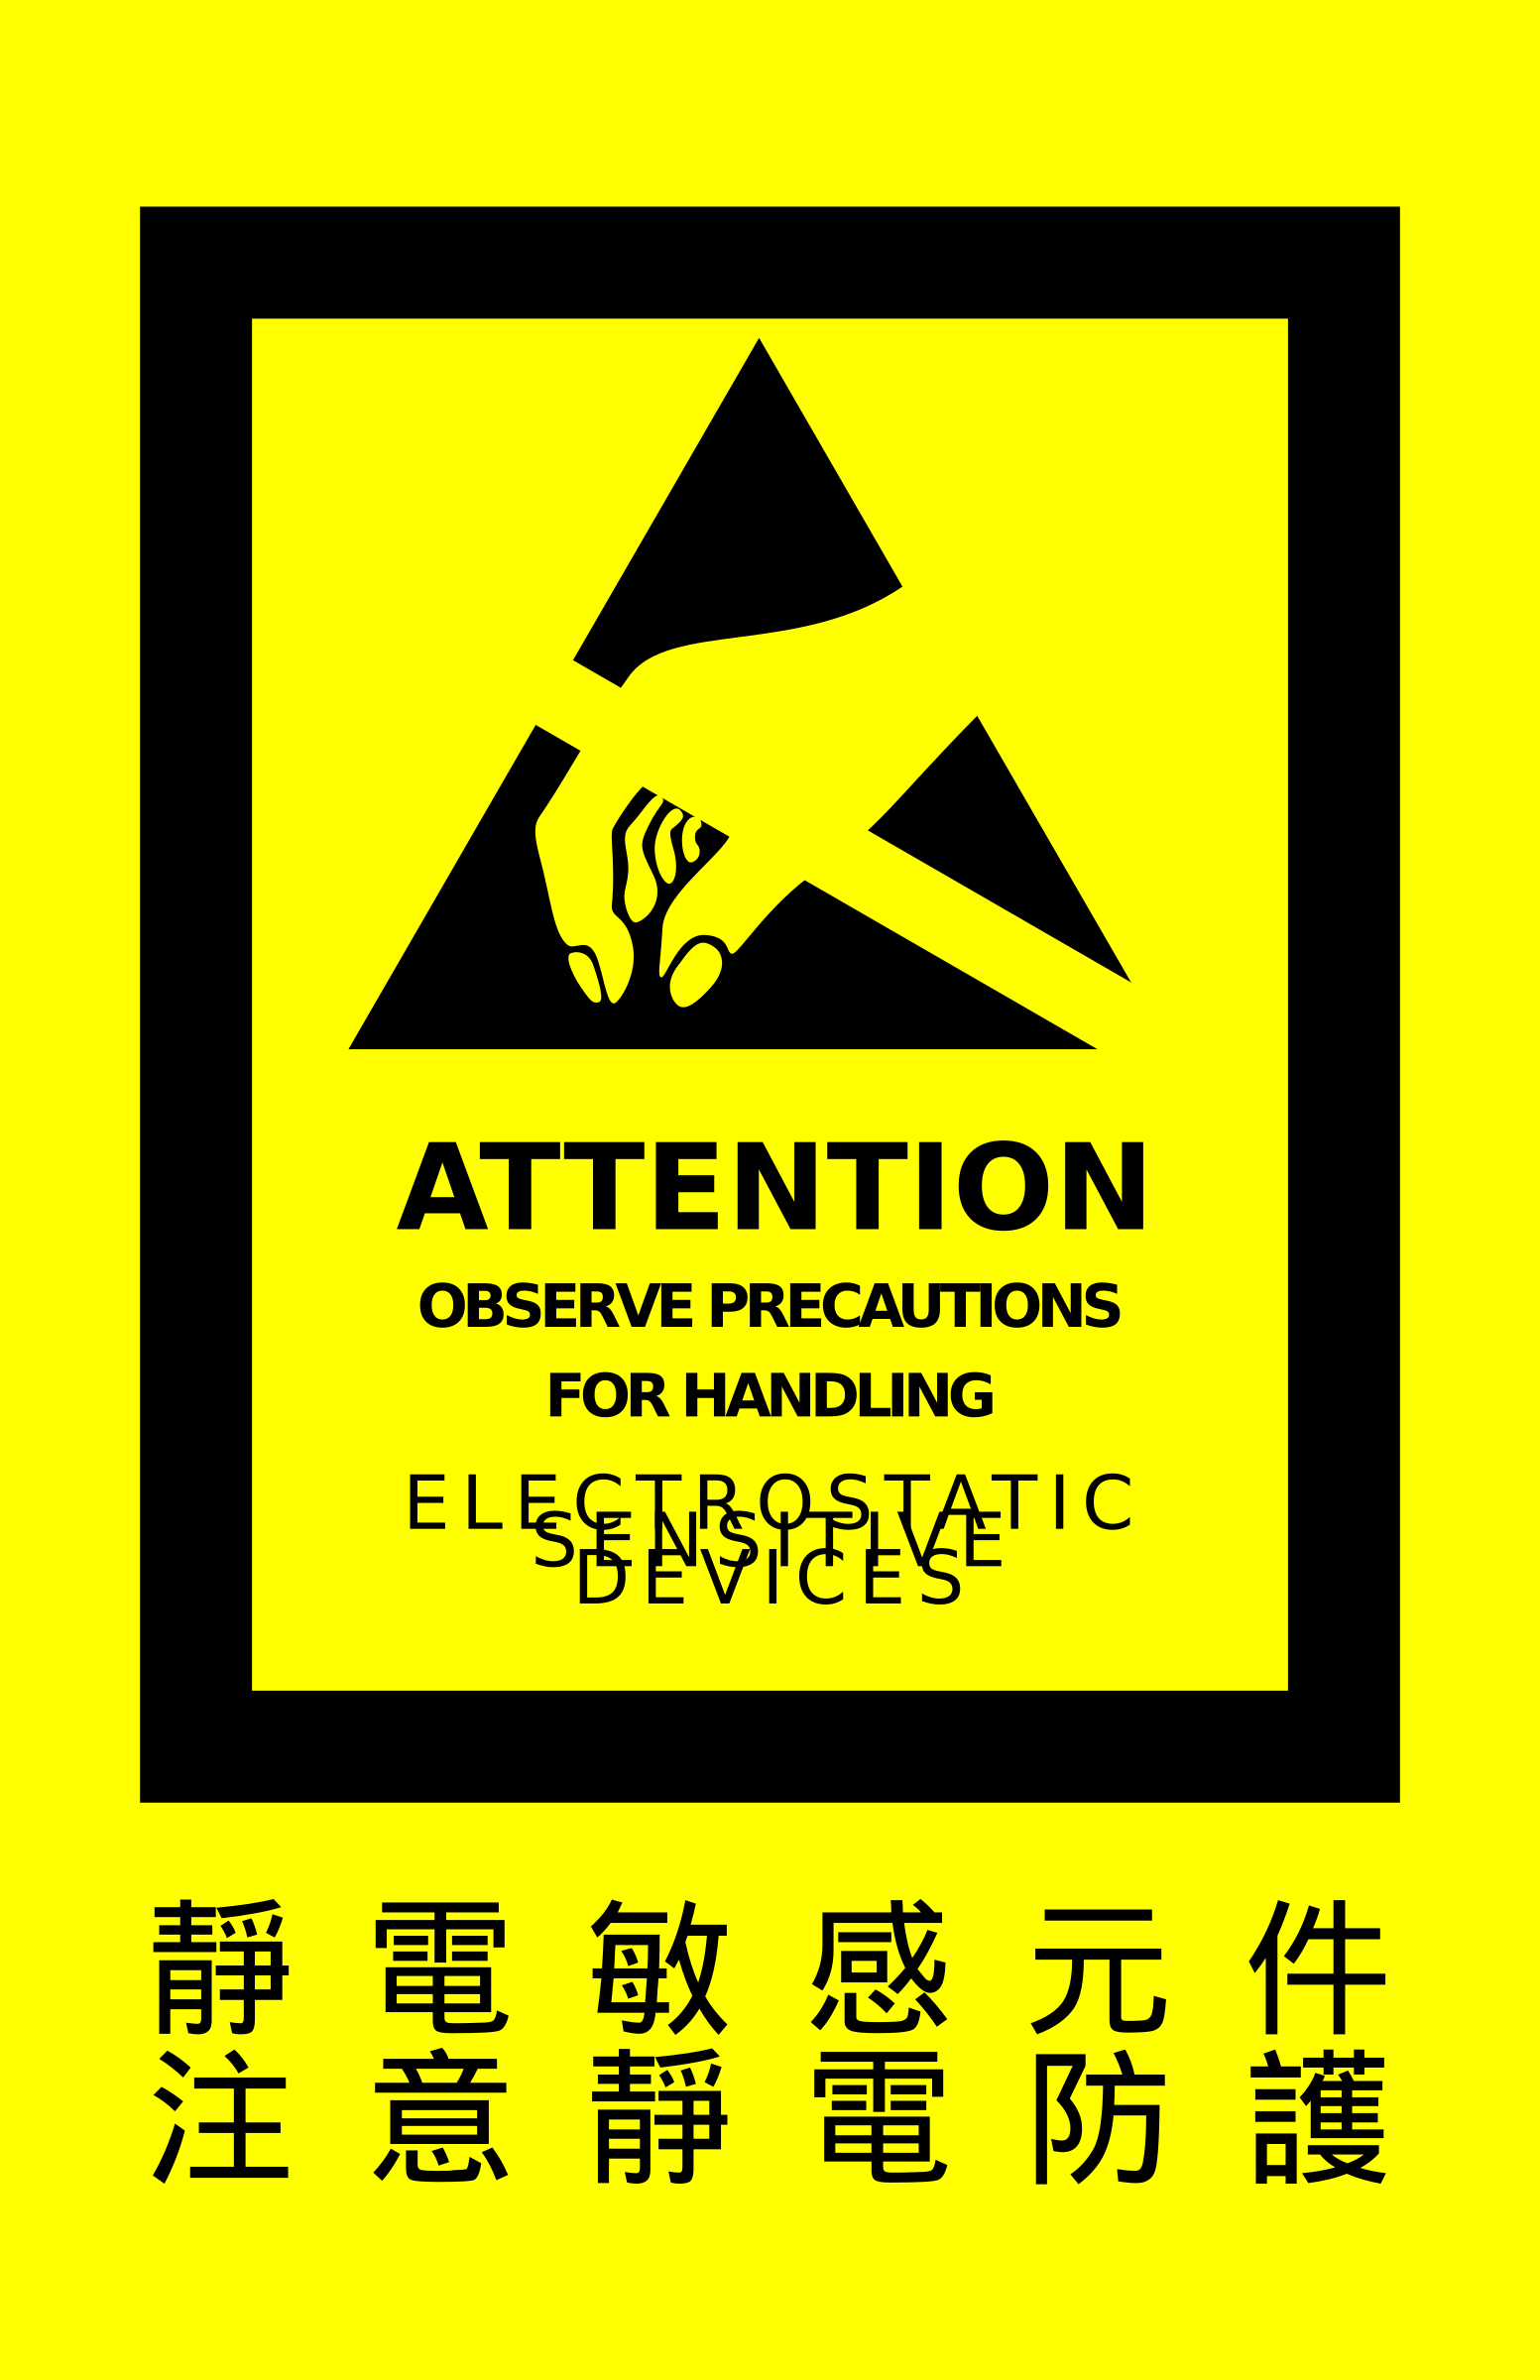 ESD Precaution Sign by LeonH